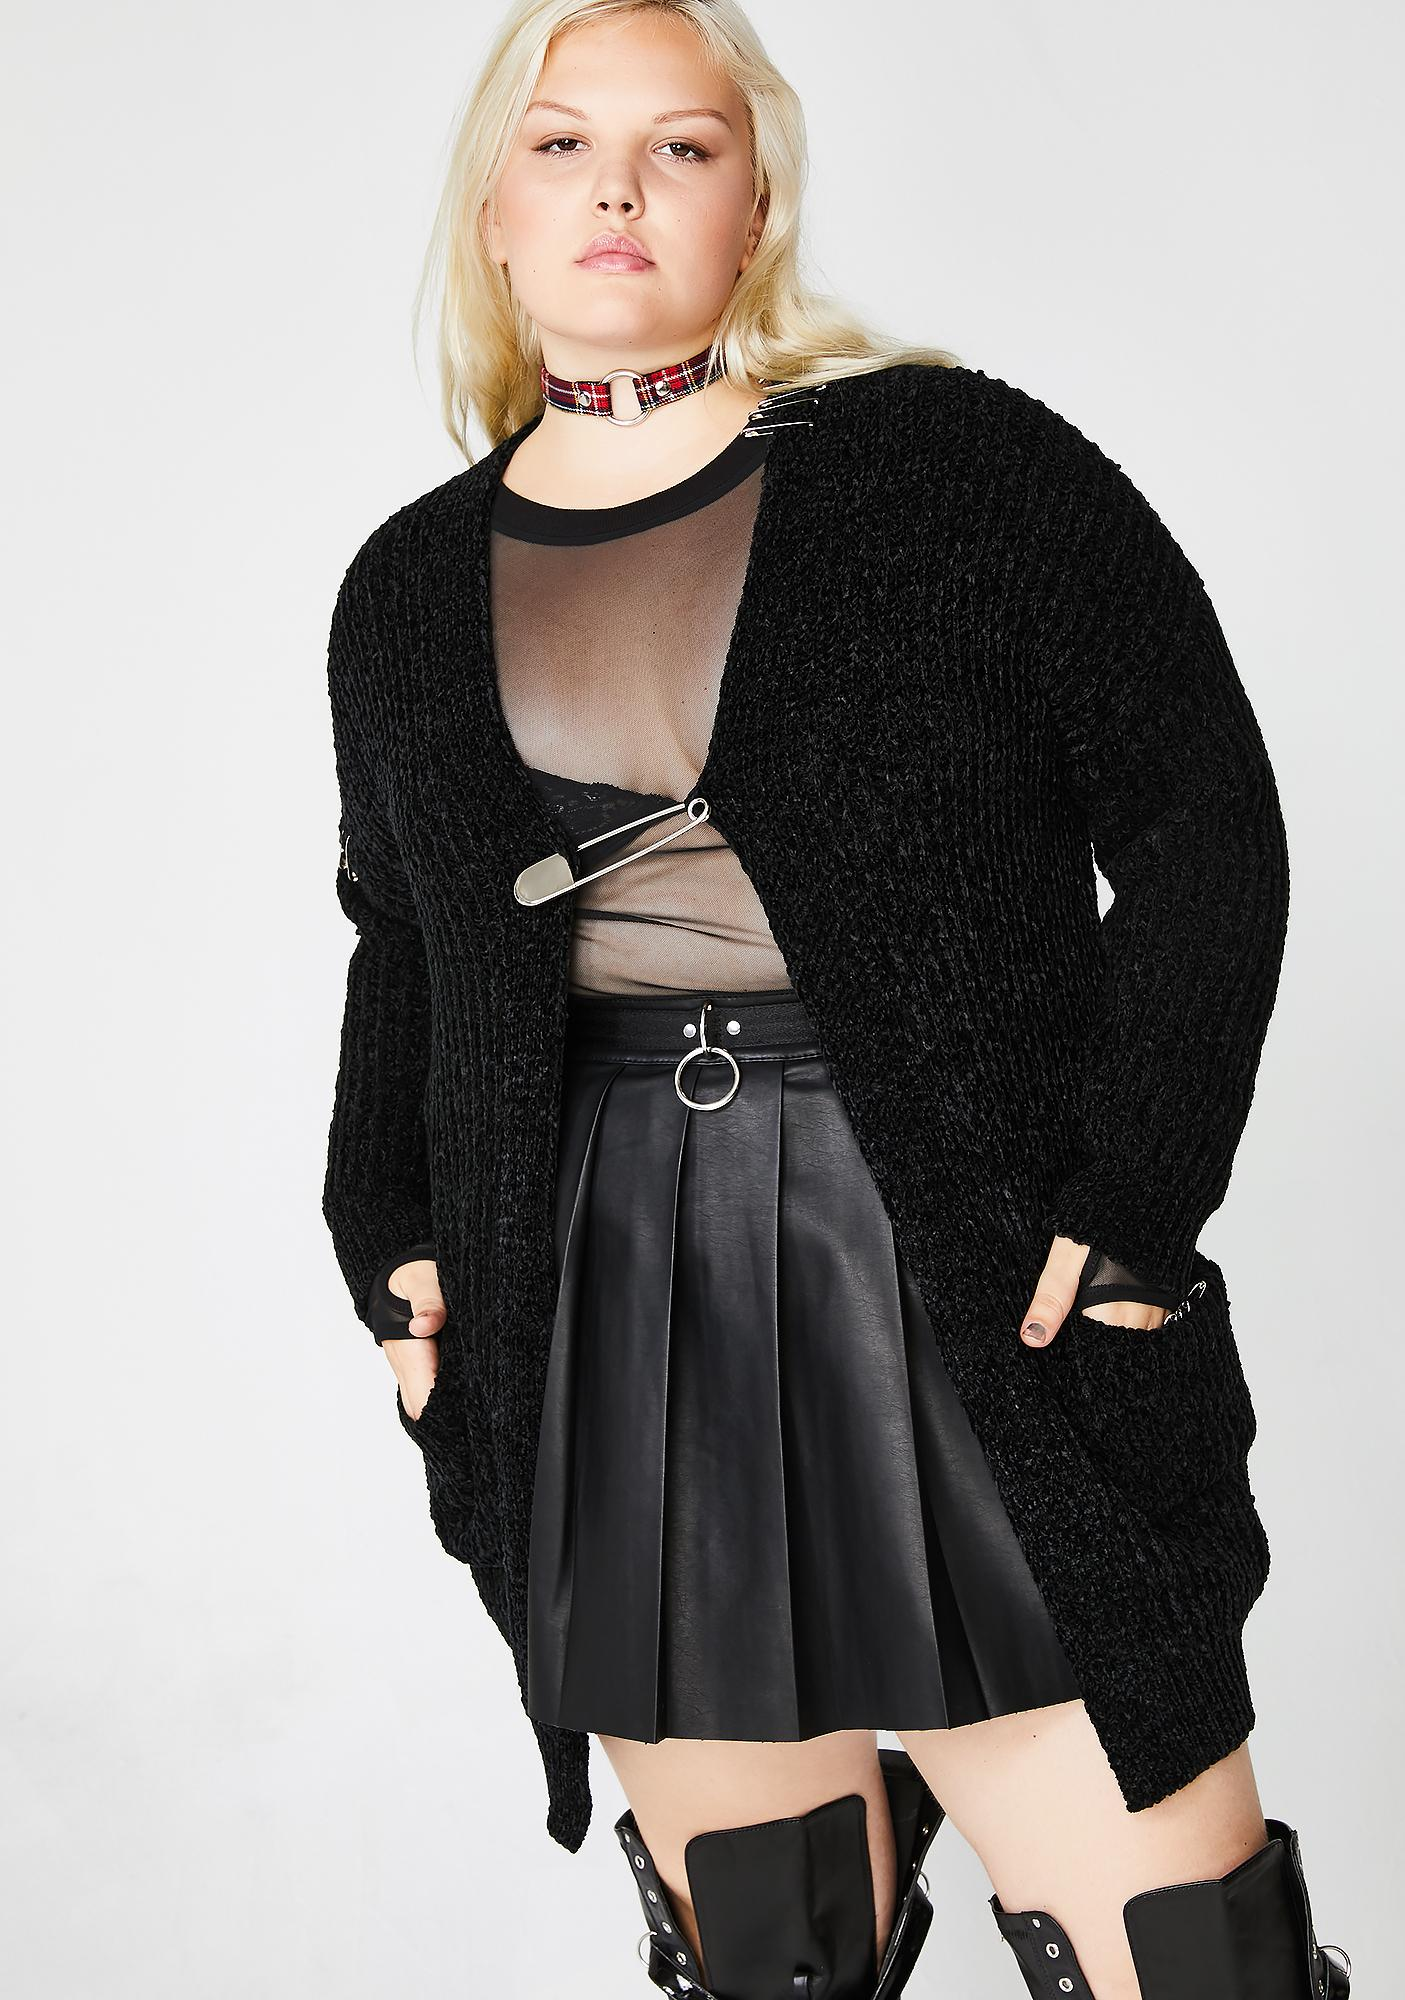 Current Mood Charming Antisocial Climber Safety Pin Cardigan